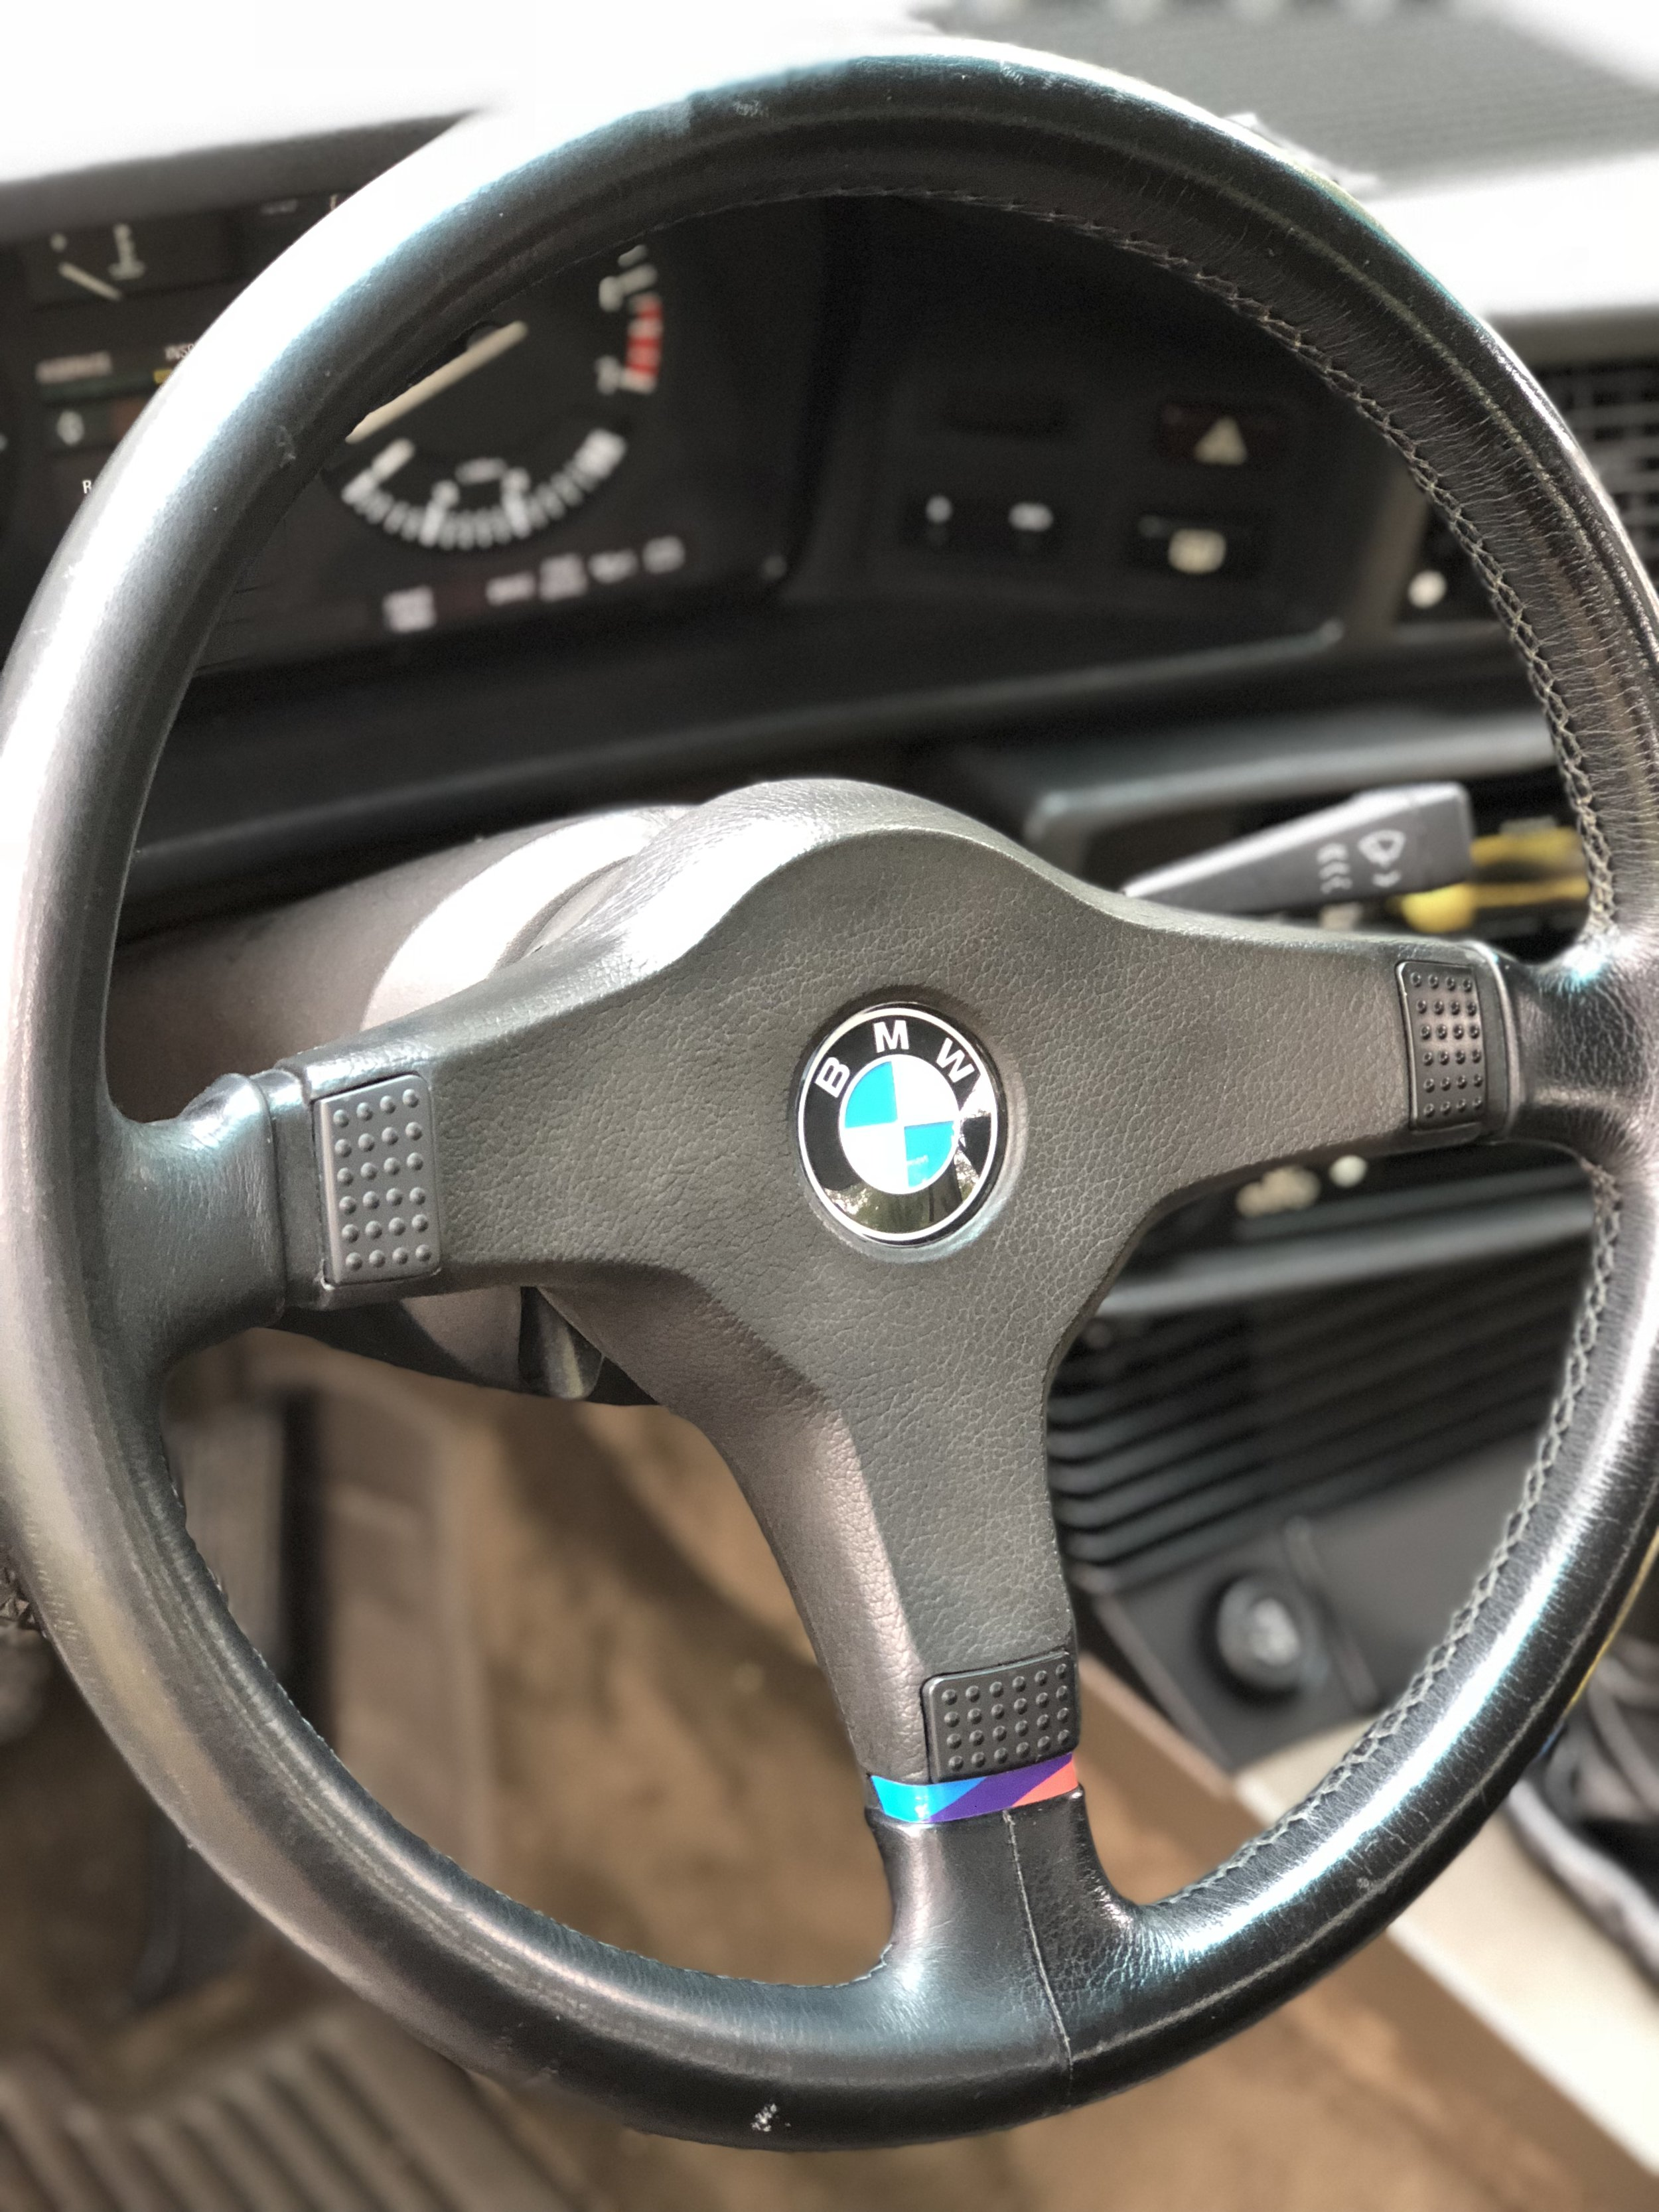 Leather Cleaning On BMW Steering Wheel.JPEG